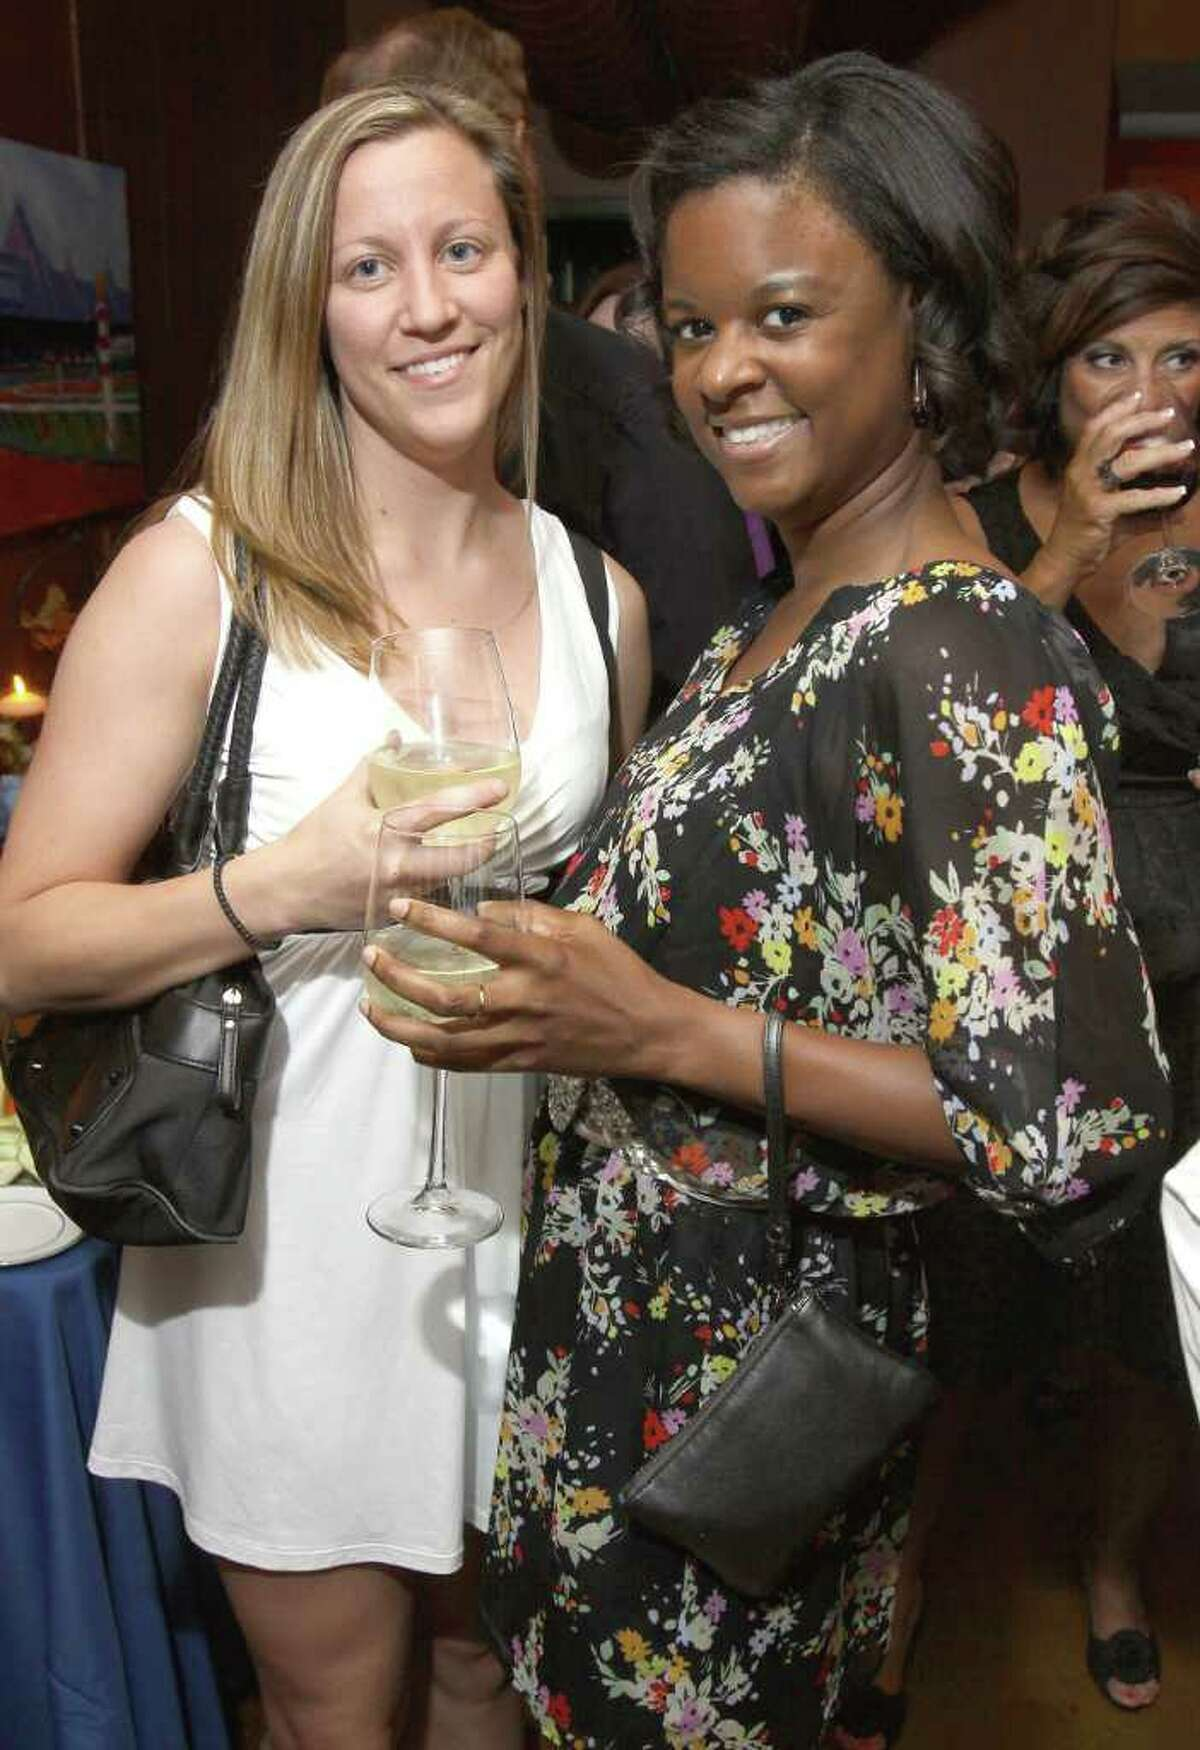 Saratoga Springs, NY - June 3, 2011 - (Photo by Joe Putrock/Special to the Times Union) - Ashley Swint(left) and Takara Wiles(right) during